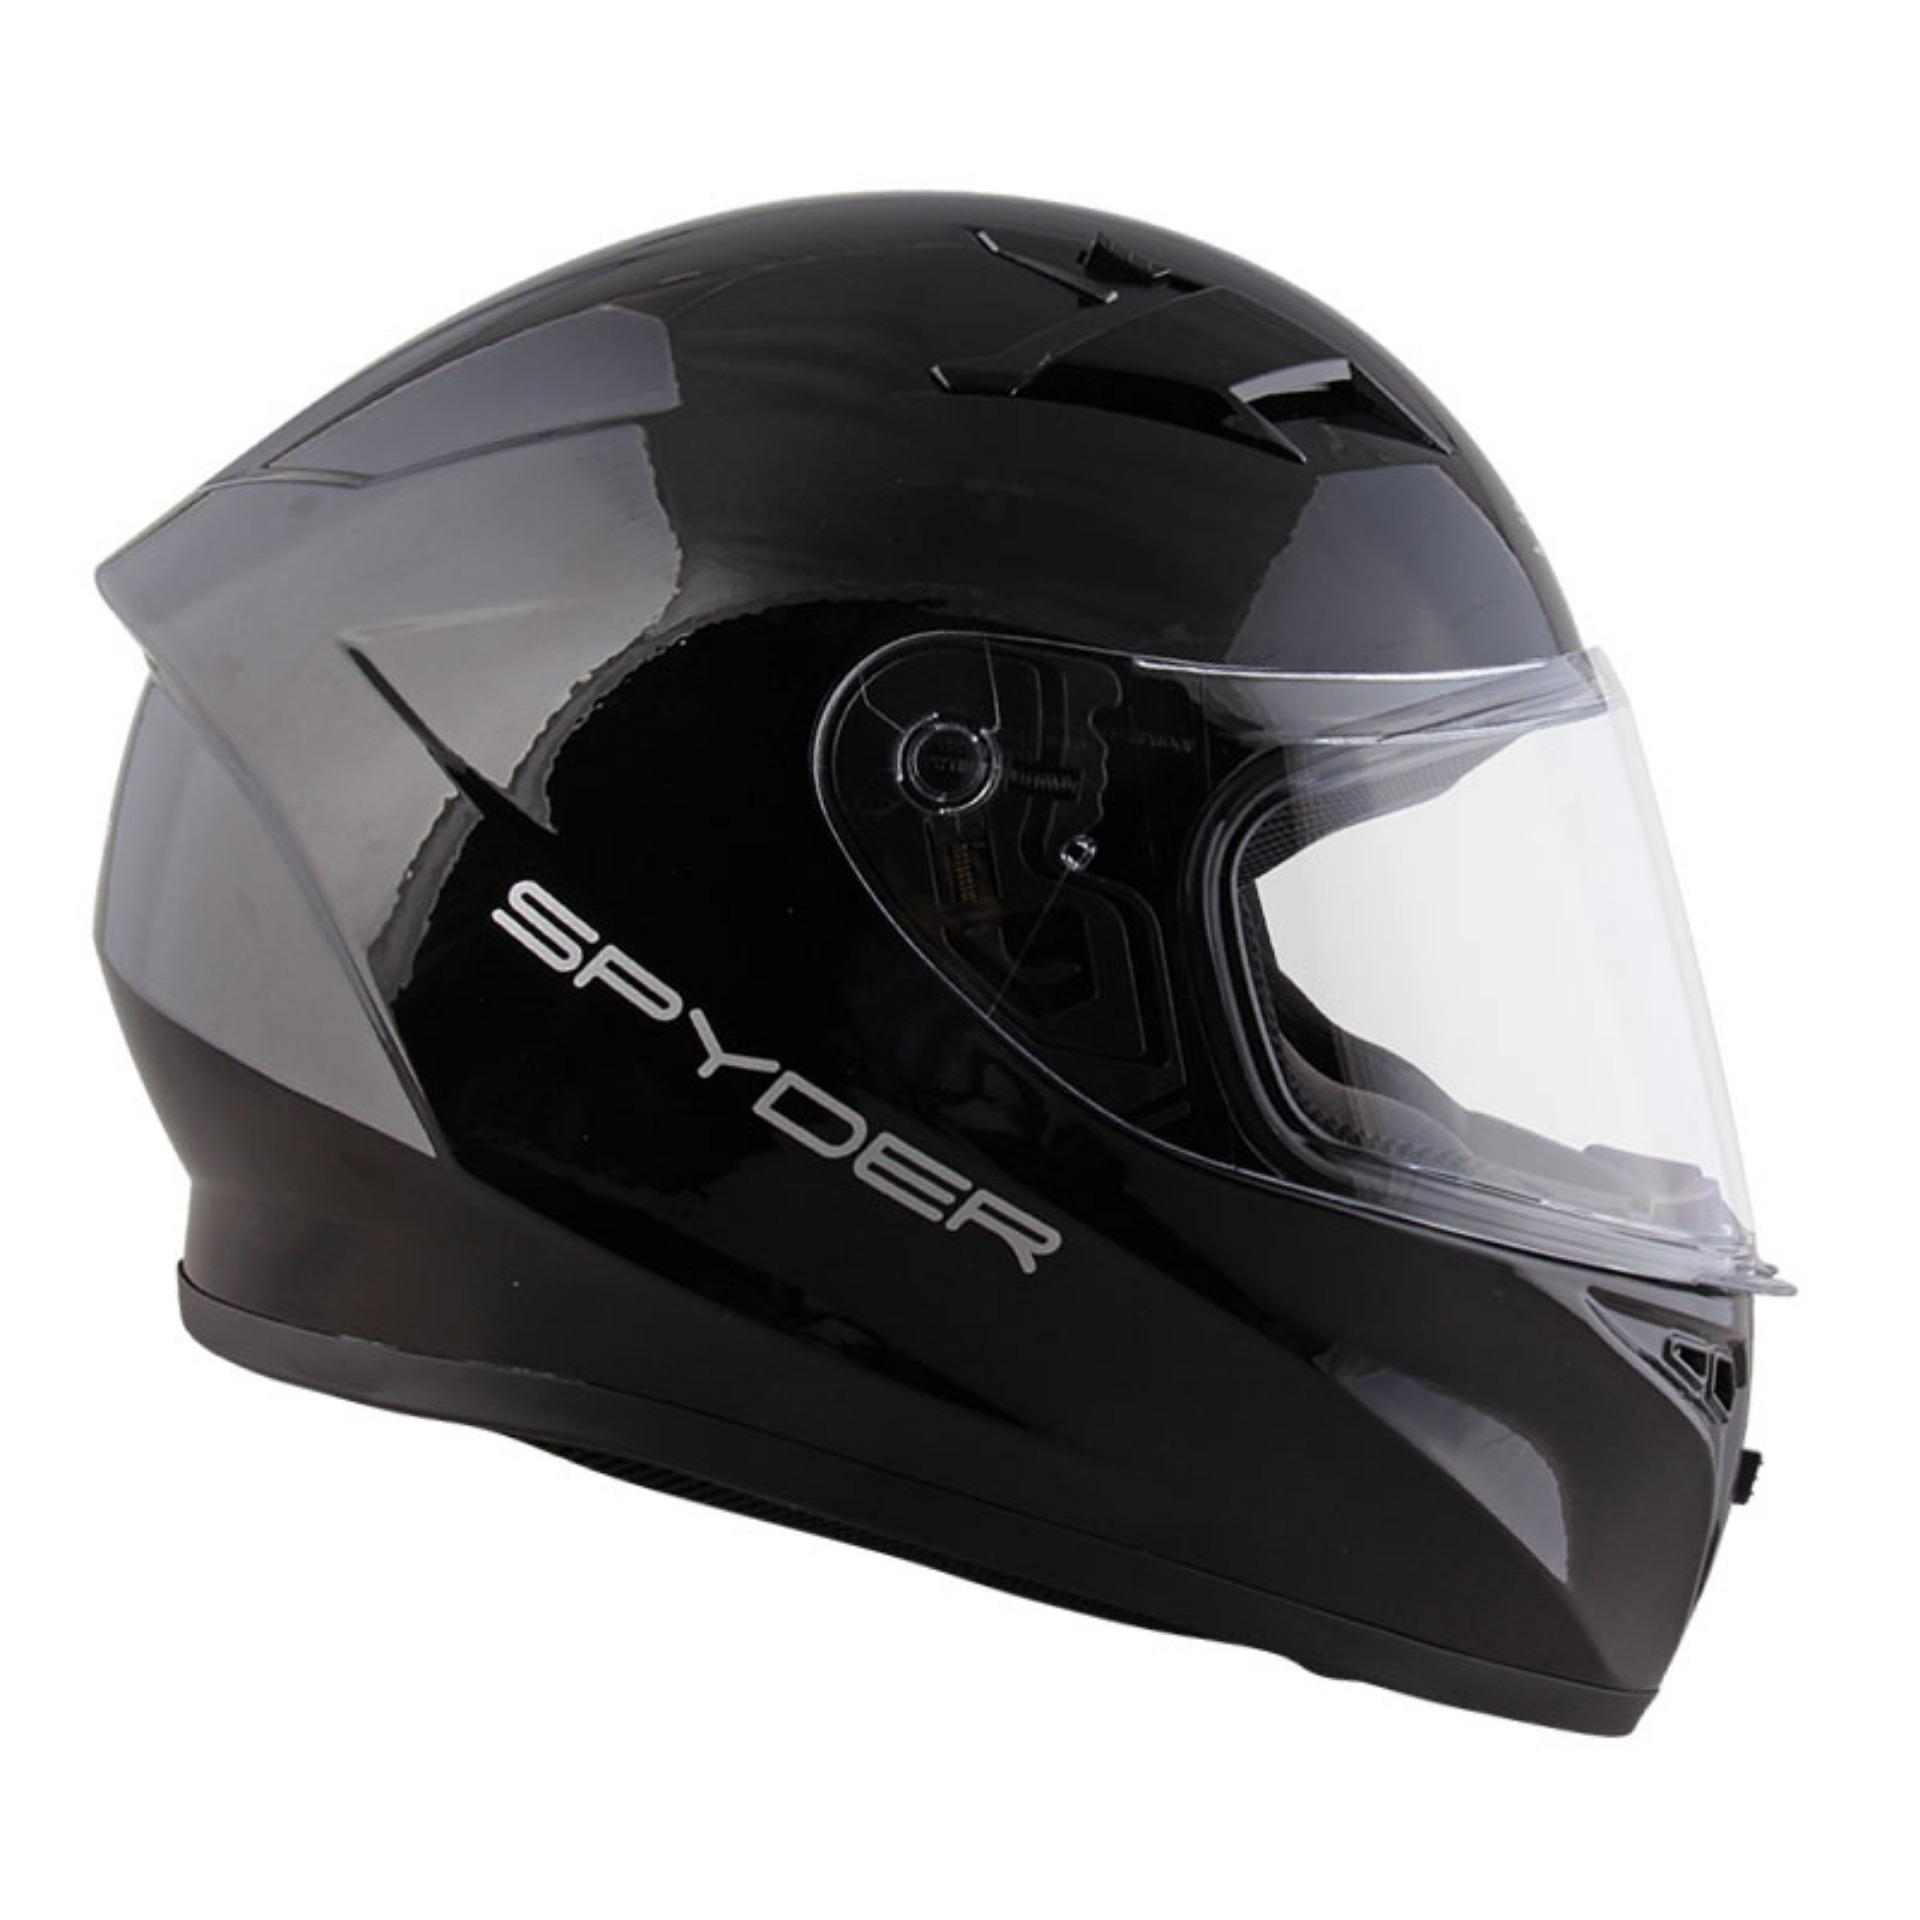 d367e0c9 Spyder Philippines -Spyder Helmets for sale - prices & reviews | Lazada